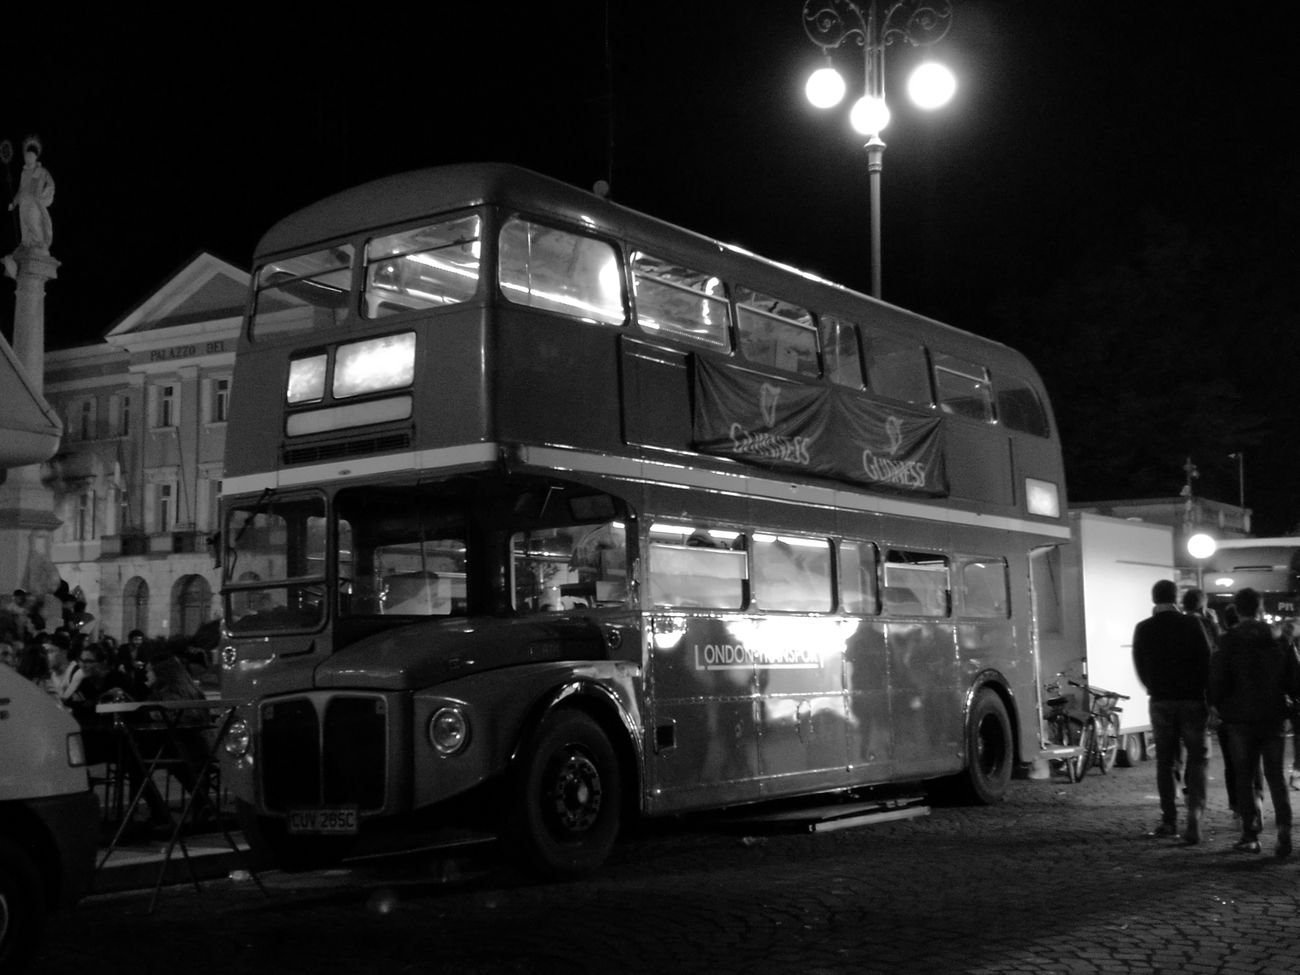 Blackandwhite Transportation Mode Of Transport Night Mobilephotography Gorizia HuaweiP9 Sundaynight History Londonbus Old-fashioned